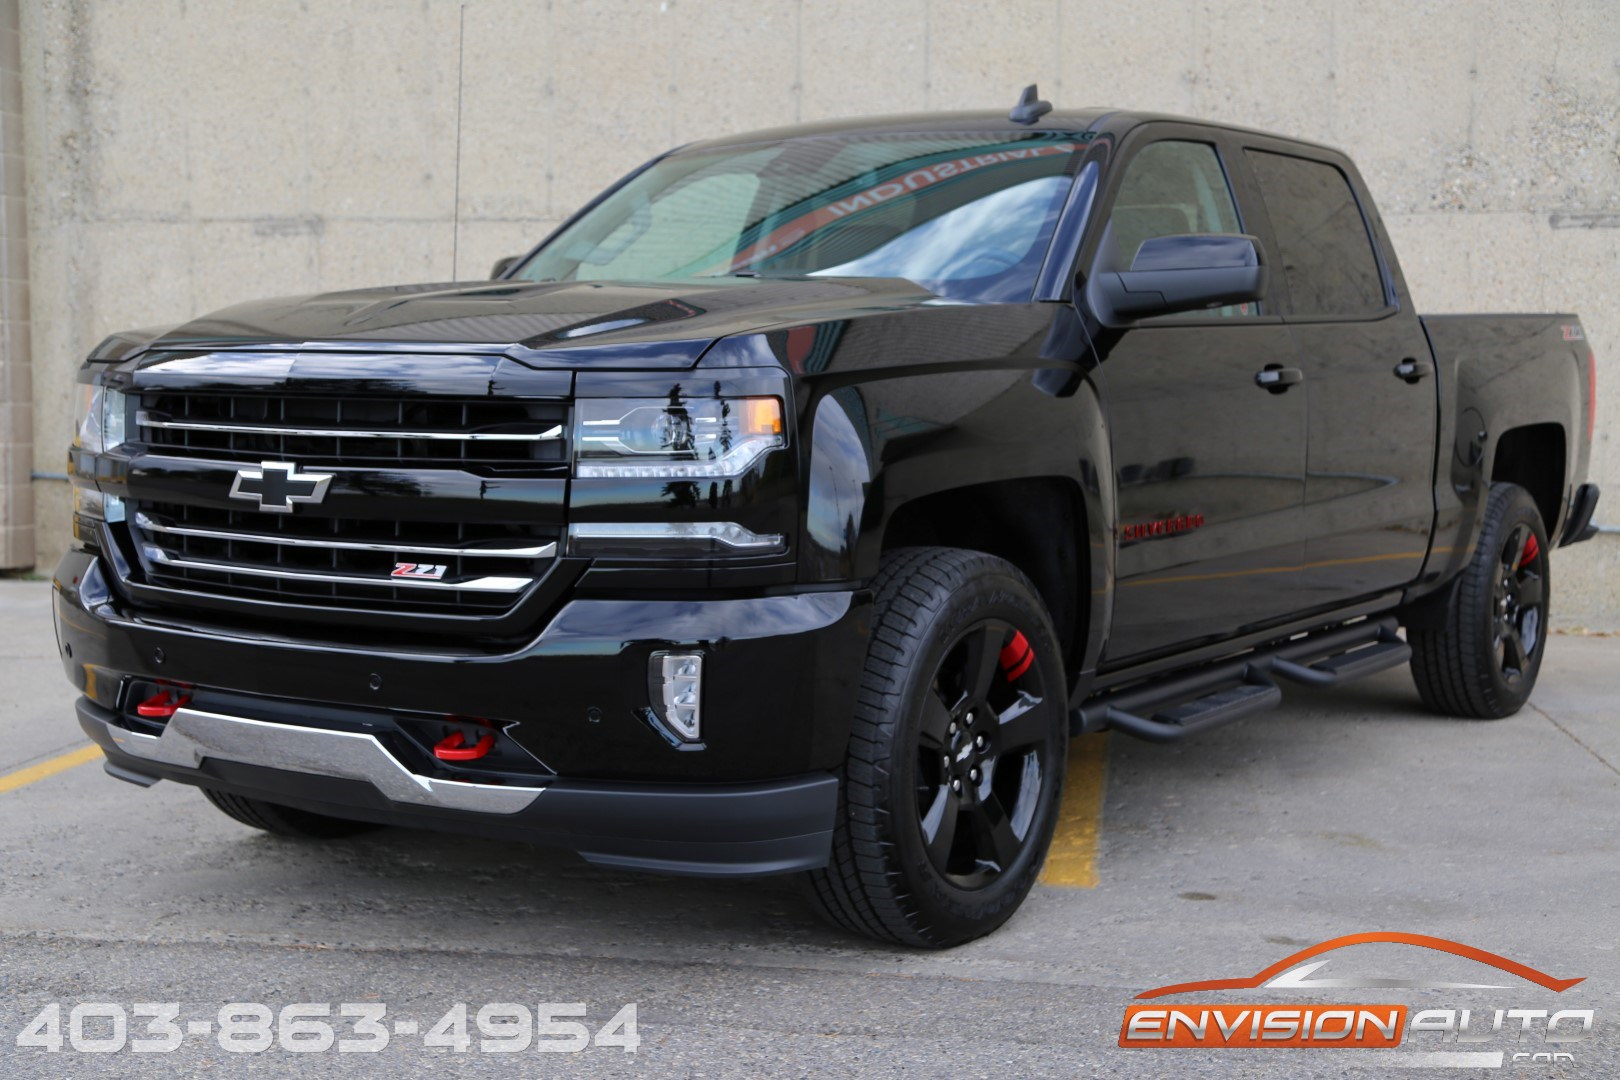 2017 chevrolet silverado 1500 ltz redline edition ltz plus 2lz z71 envision auto calgary. Black Bedroom Furniture Sets. Home Design Ideas